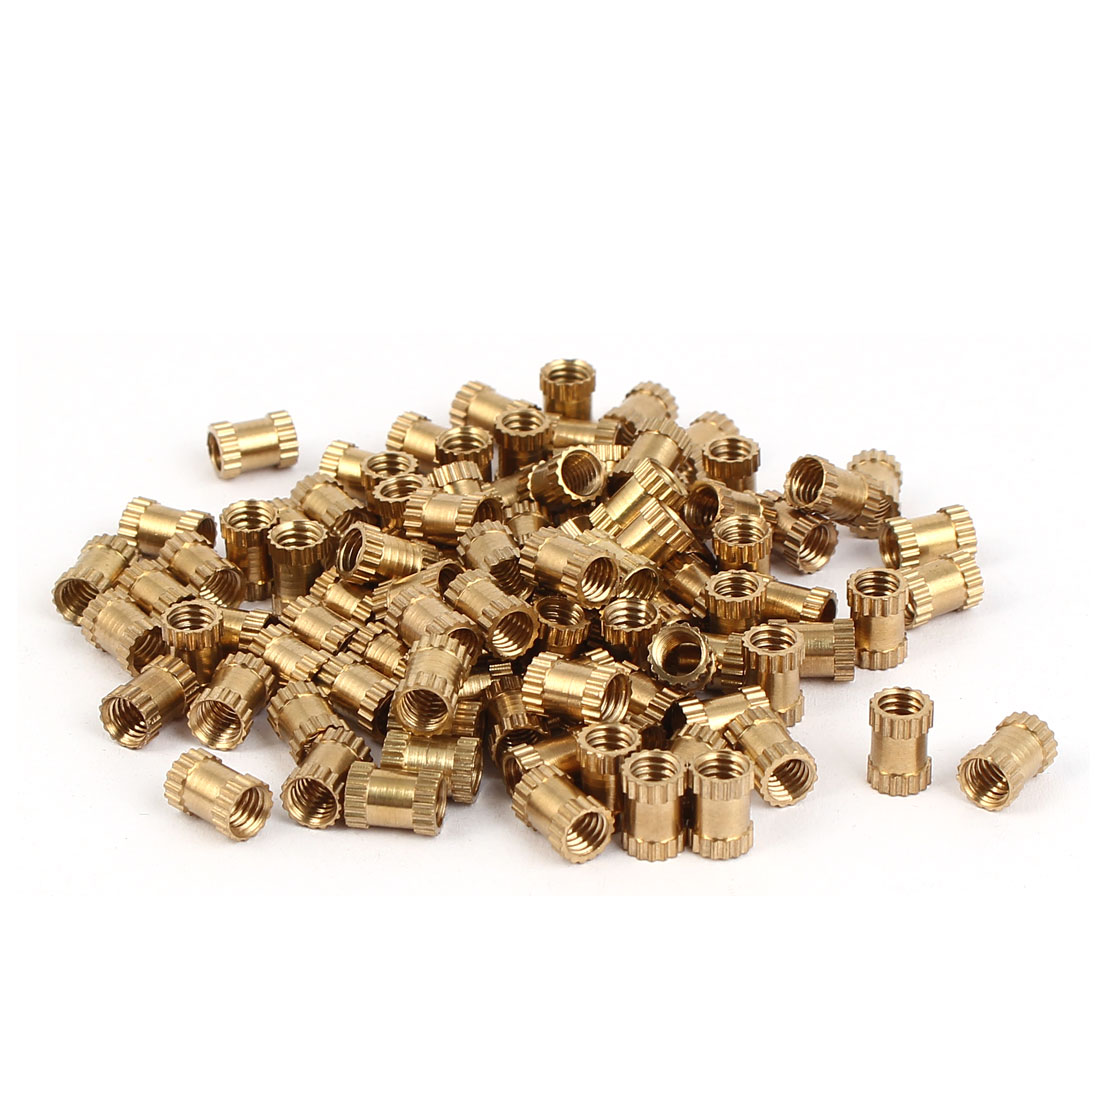 M4 x 7mm Brass Cylinder Injection Molding Knurled Insert Embedded Nuts 100PCS